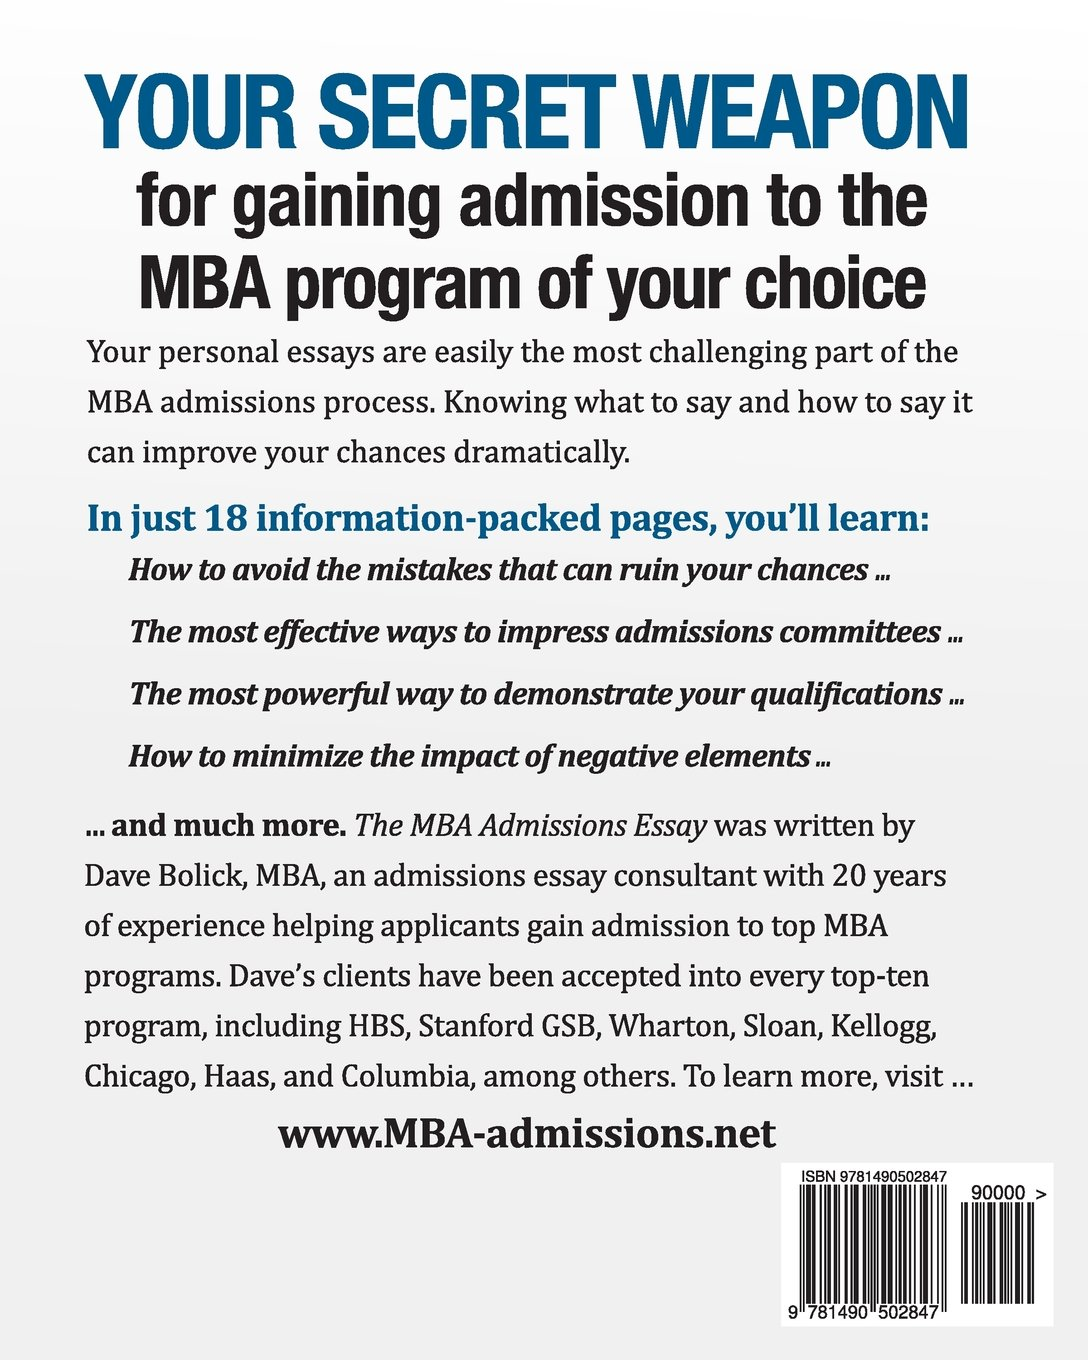 com the mba admissions essay pages of powerful com the mba admissions essay 18 pages of powerful techniques for winning admission to the mba program of your choice 9781490502847 dave bolick